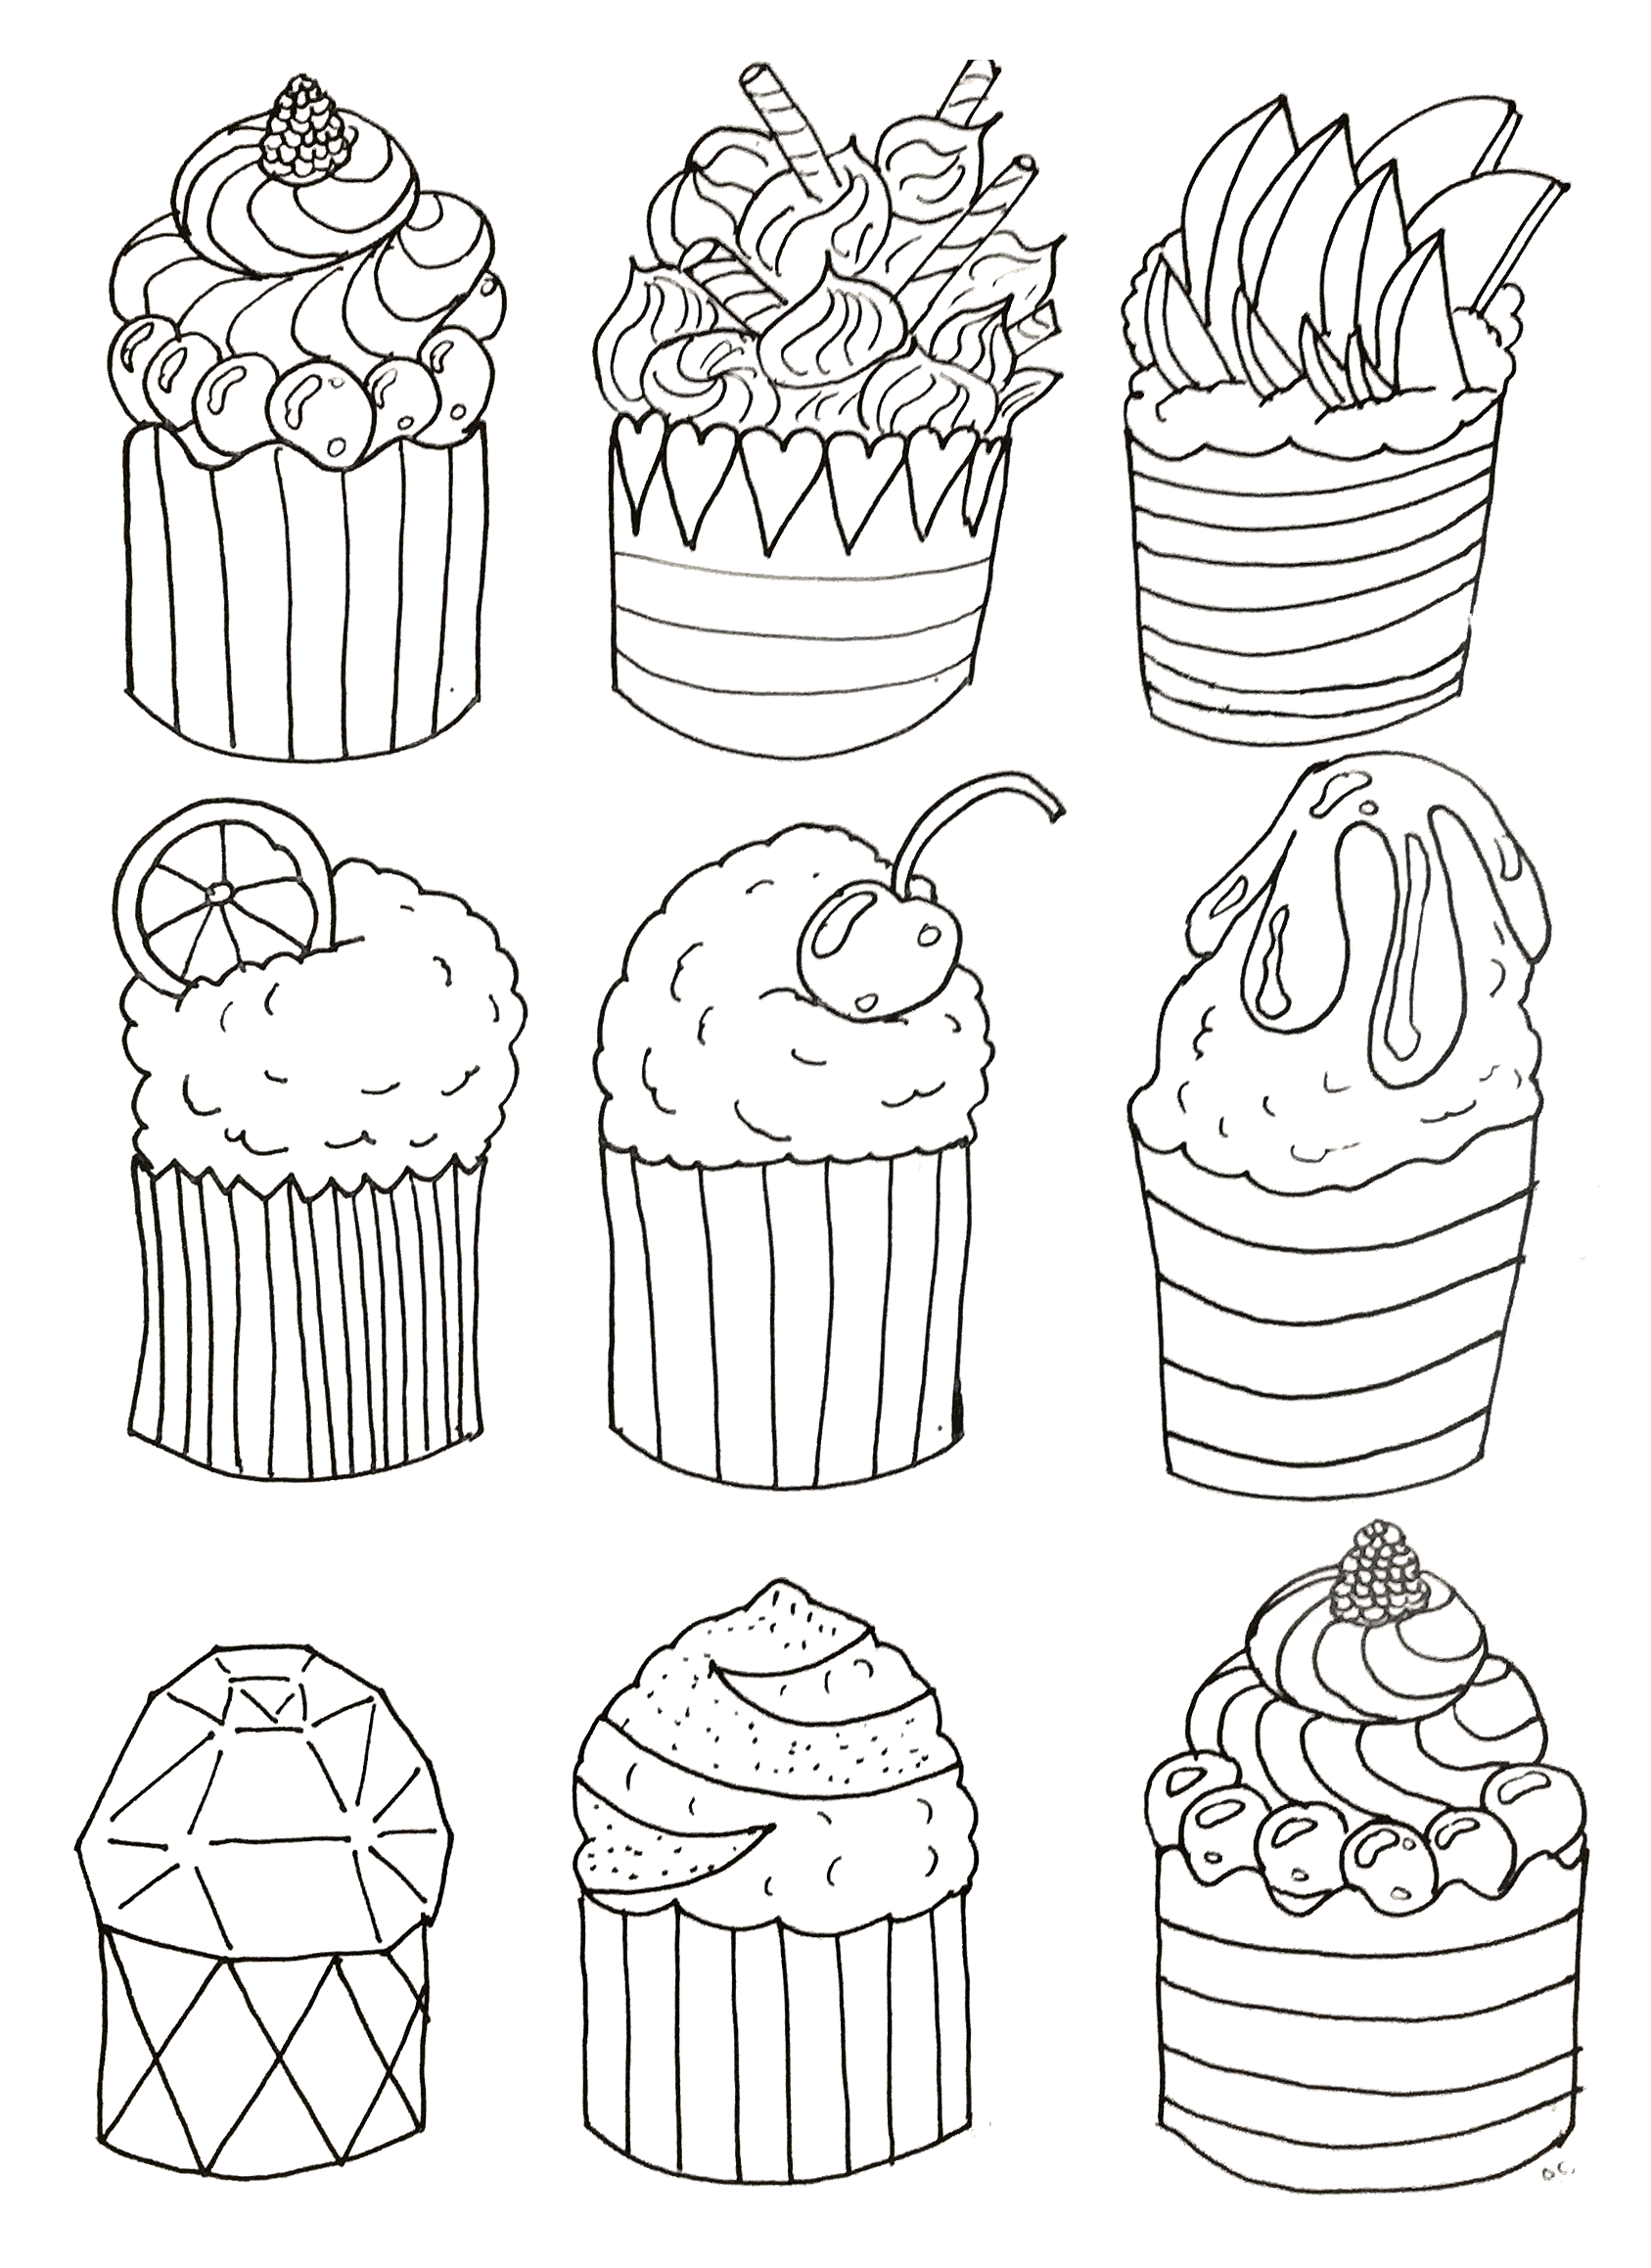 Pin On Cupcakes And Cakes Coloring Pages